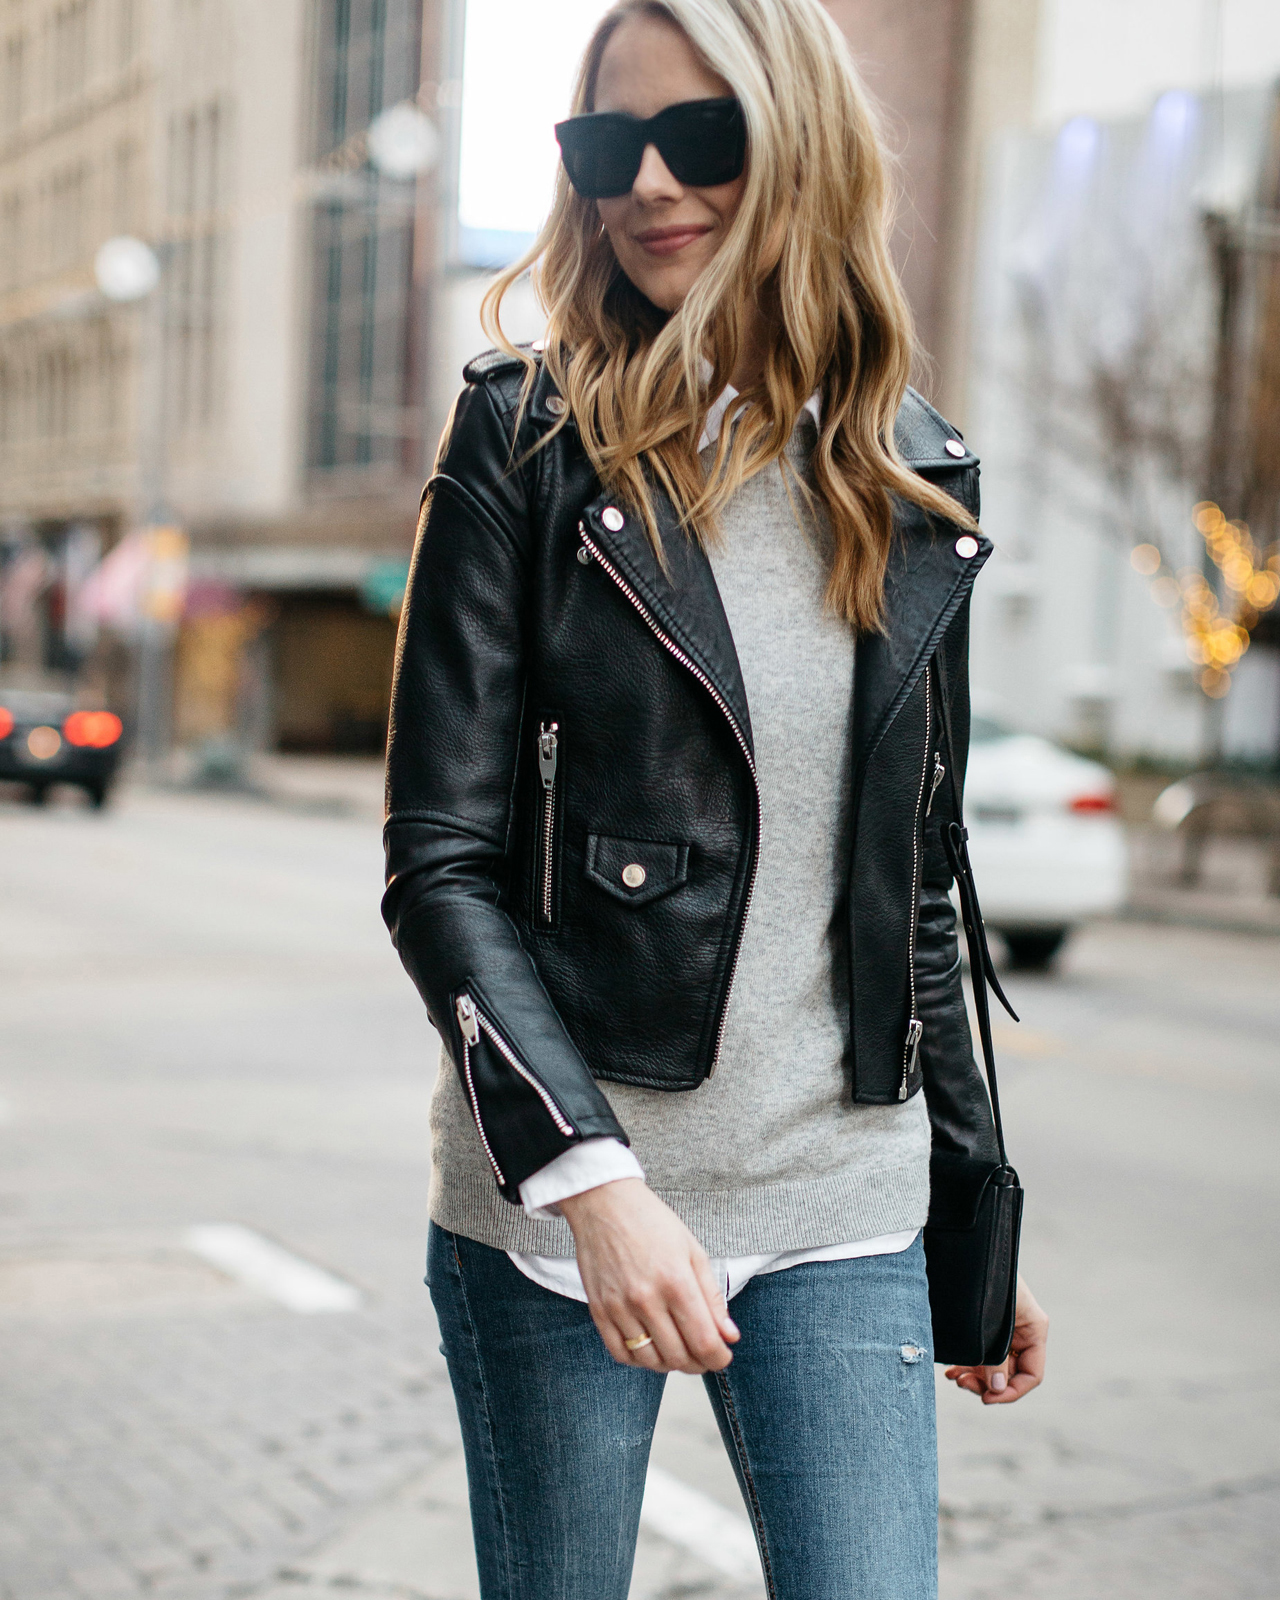 Fall Outfit, Winter Outfit, Black Leather Jacket, Grey Sweater, White Button-Down Shirt, Denim Ripped Skinny Jeans